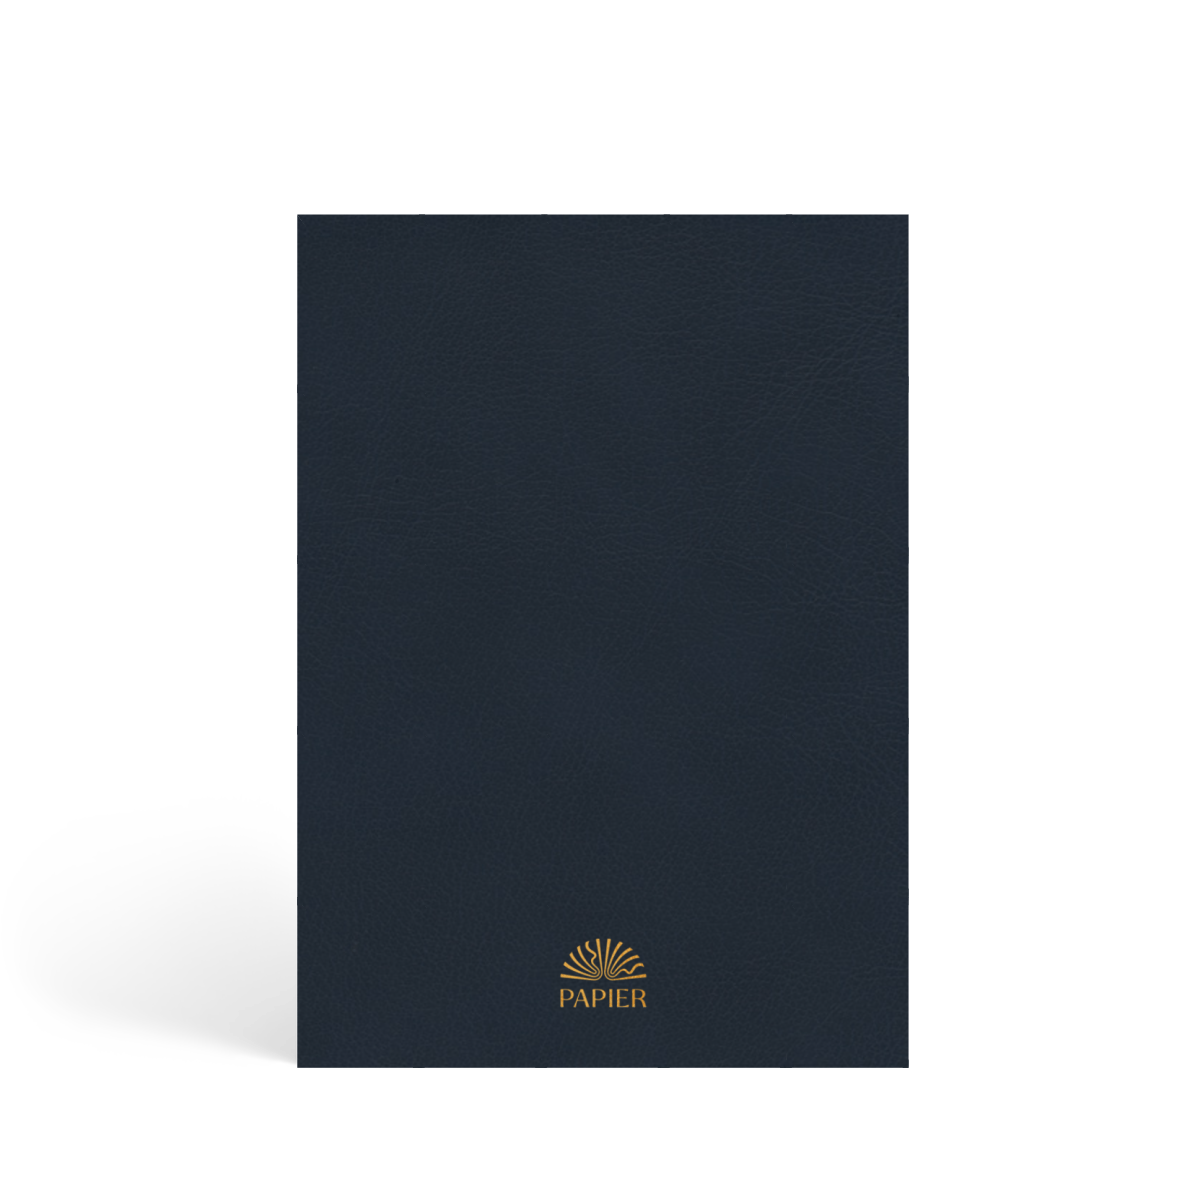 Https%3a%2f%2fwww.papier.com%2fproduct image%2f95380%2f5%2fnavy monogram 23881 back 1573495911.png?ixlib=rb 1.1